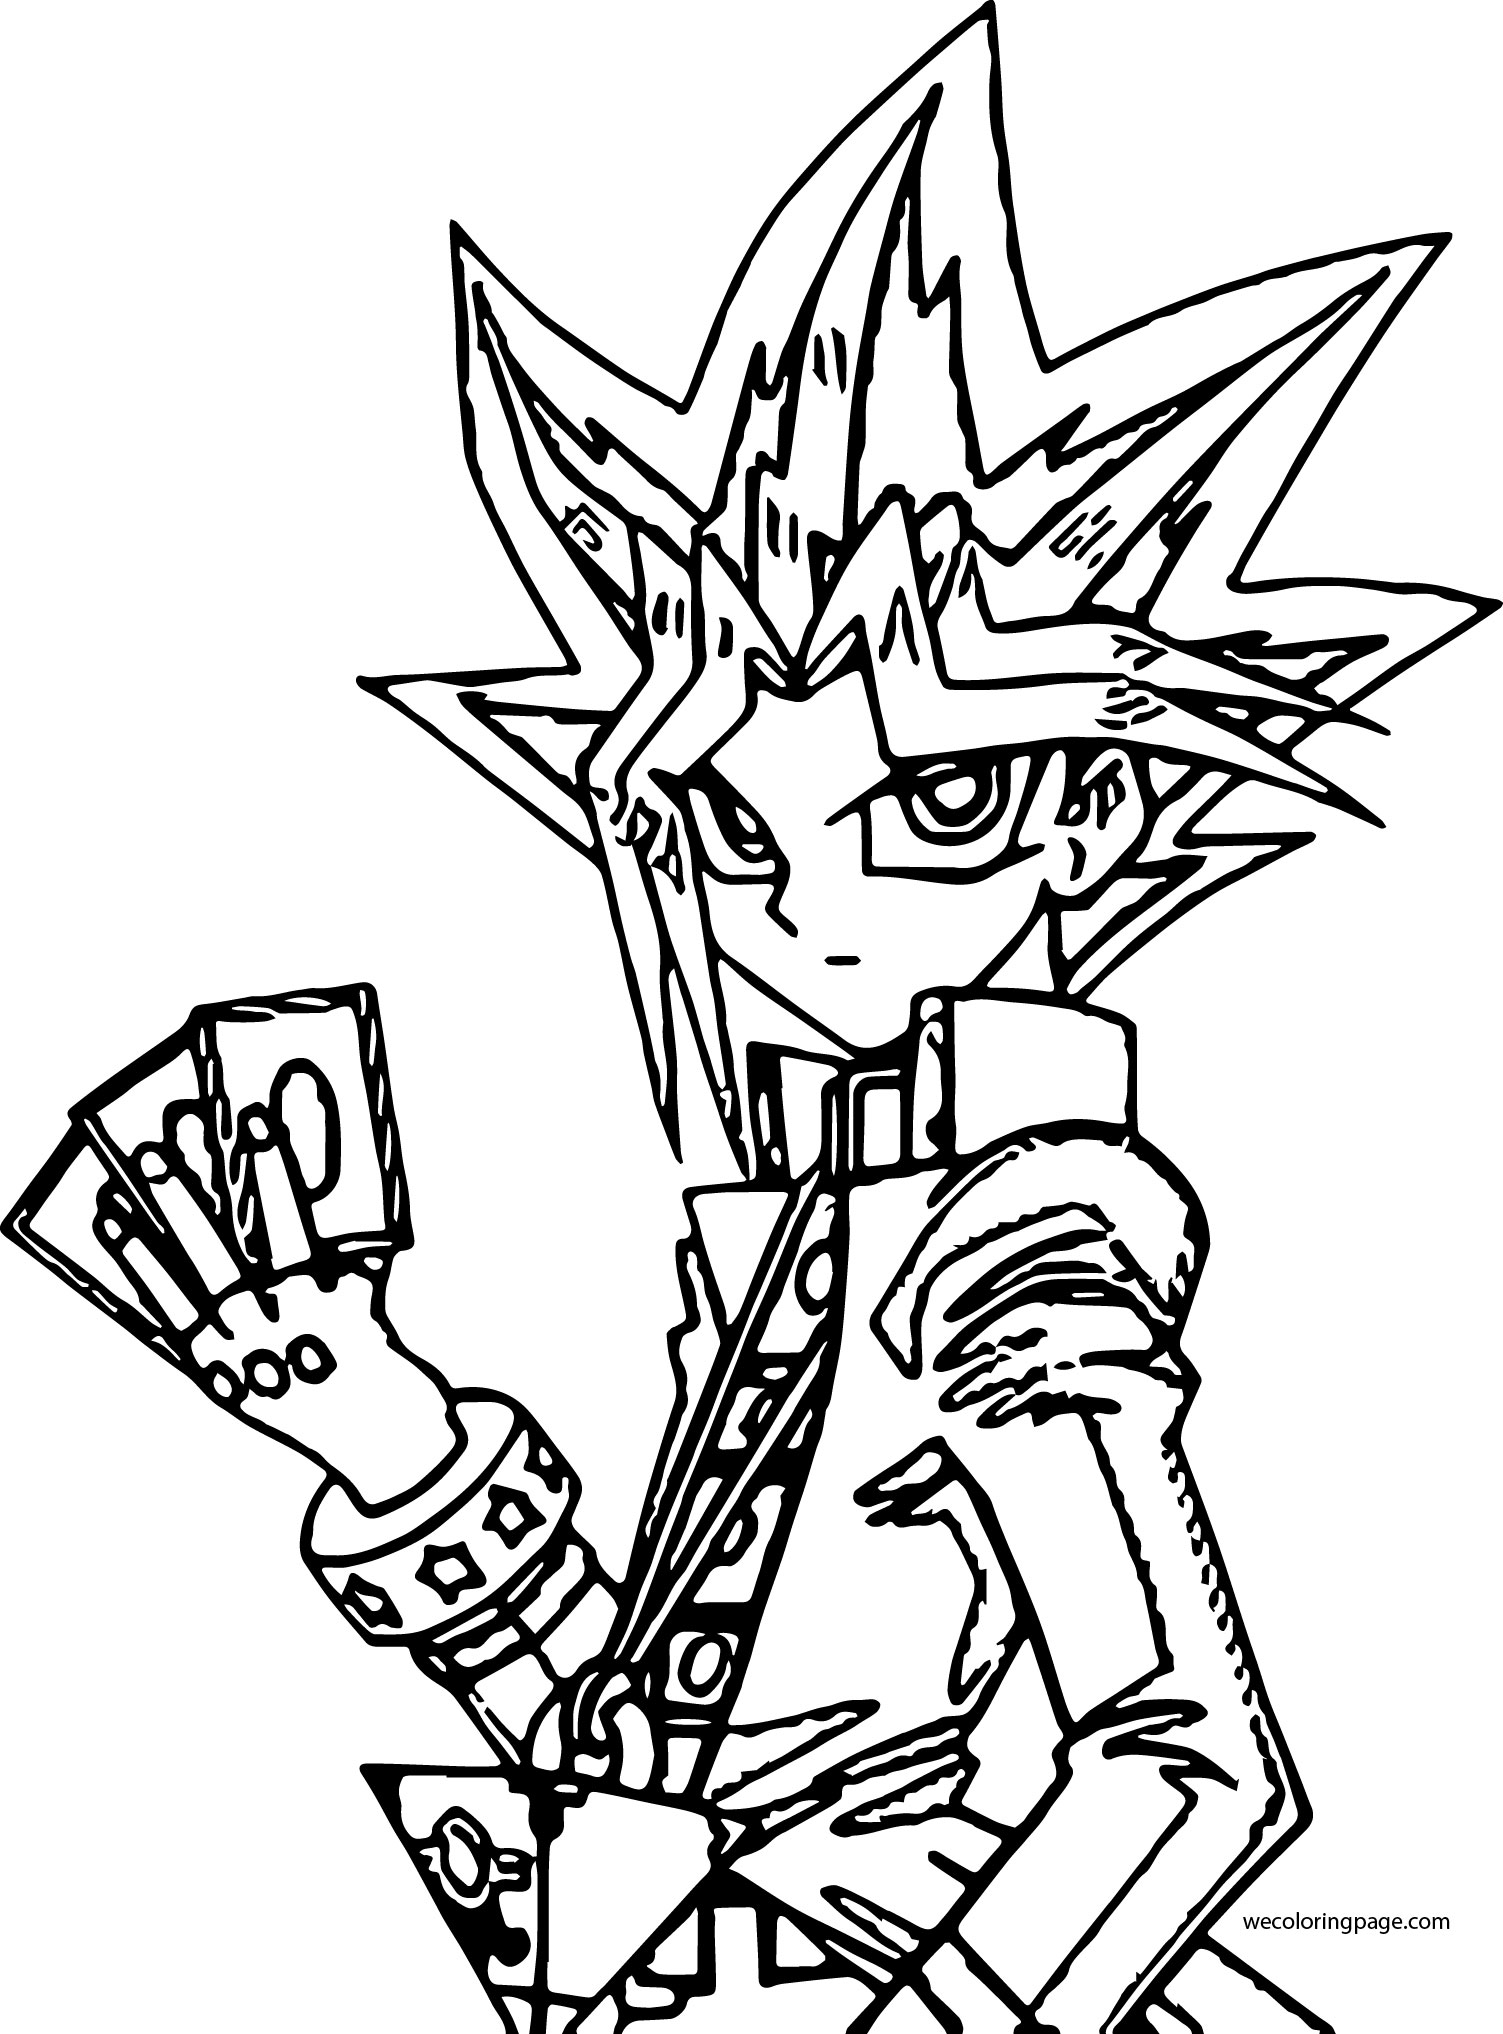 Coloring pages yugioh - Yu Gi Oh Coloring Pages